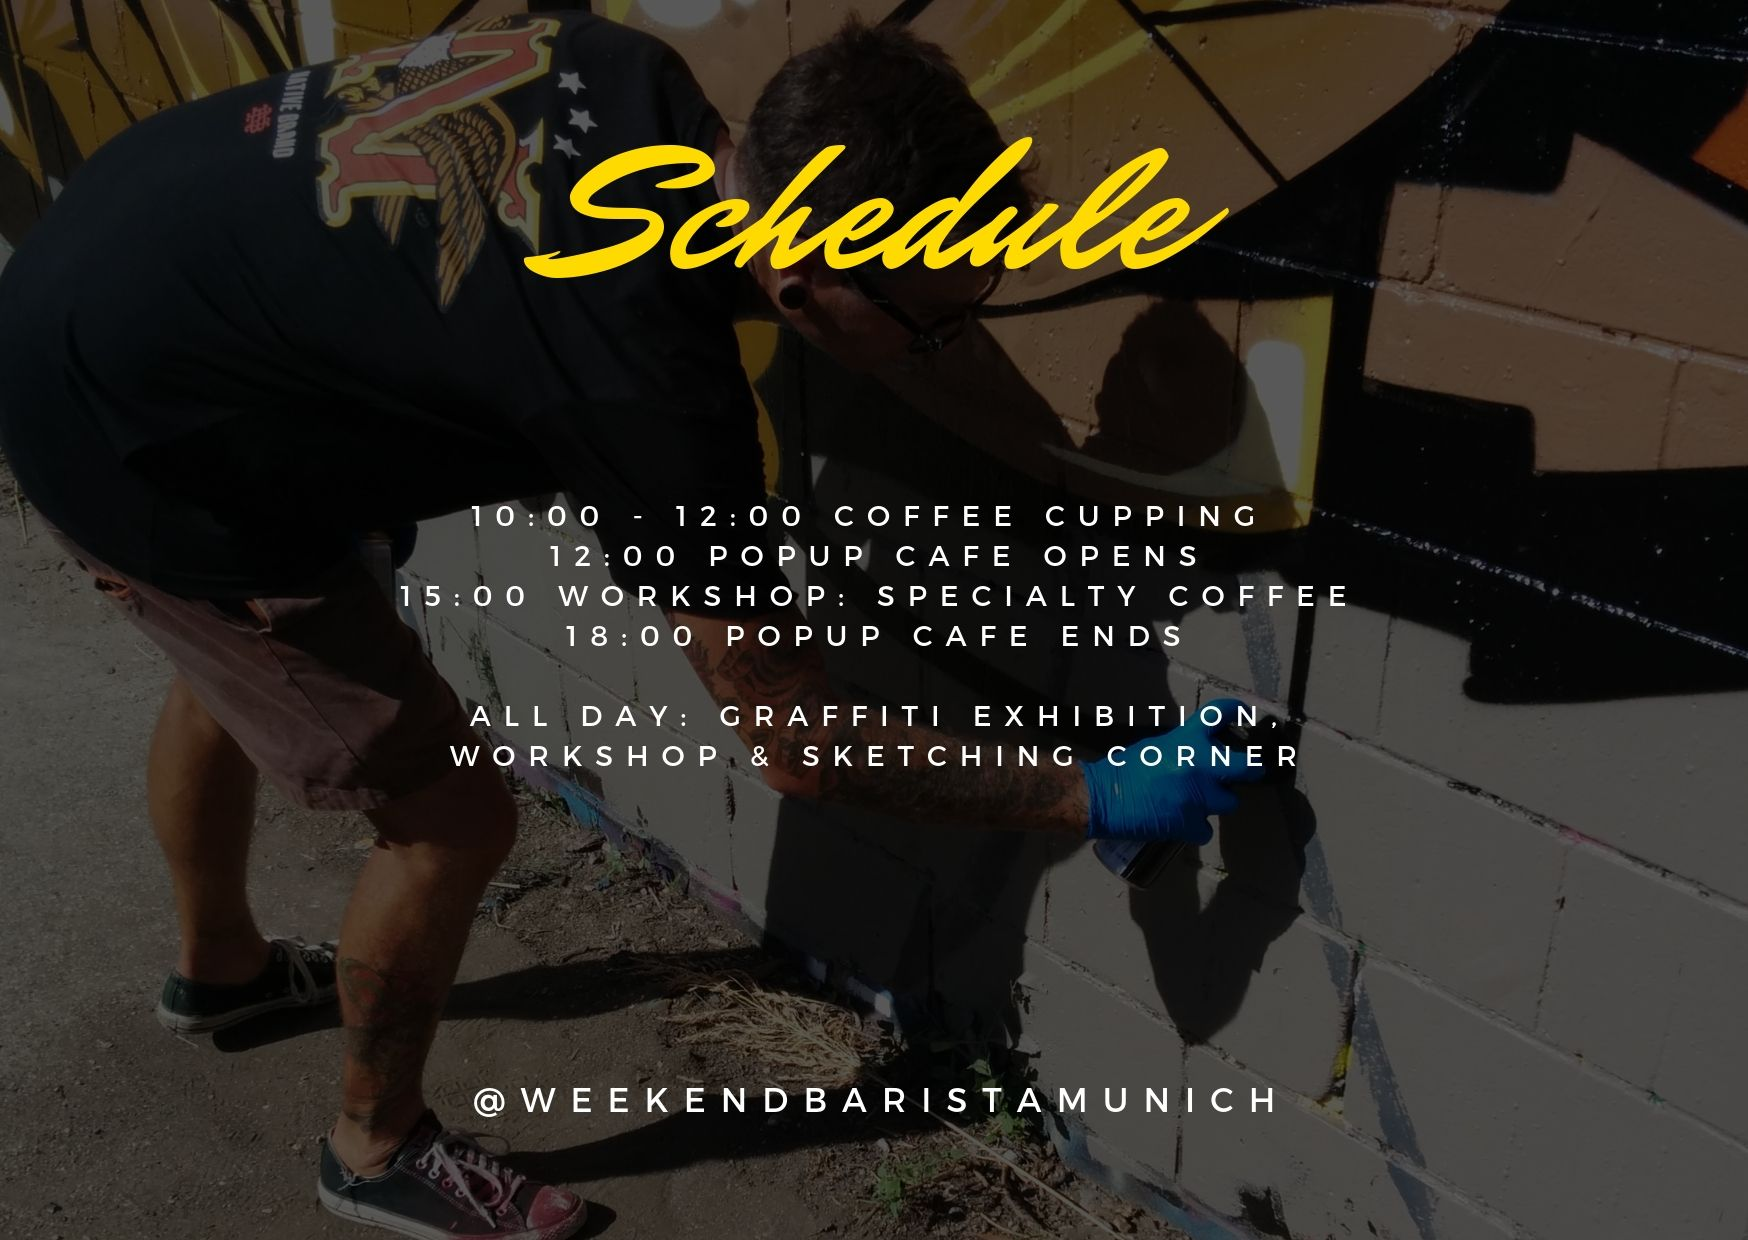 Schedule for Weekend Barista PopUp Cafe